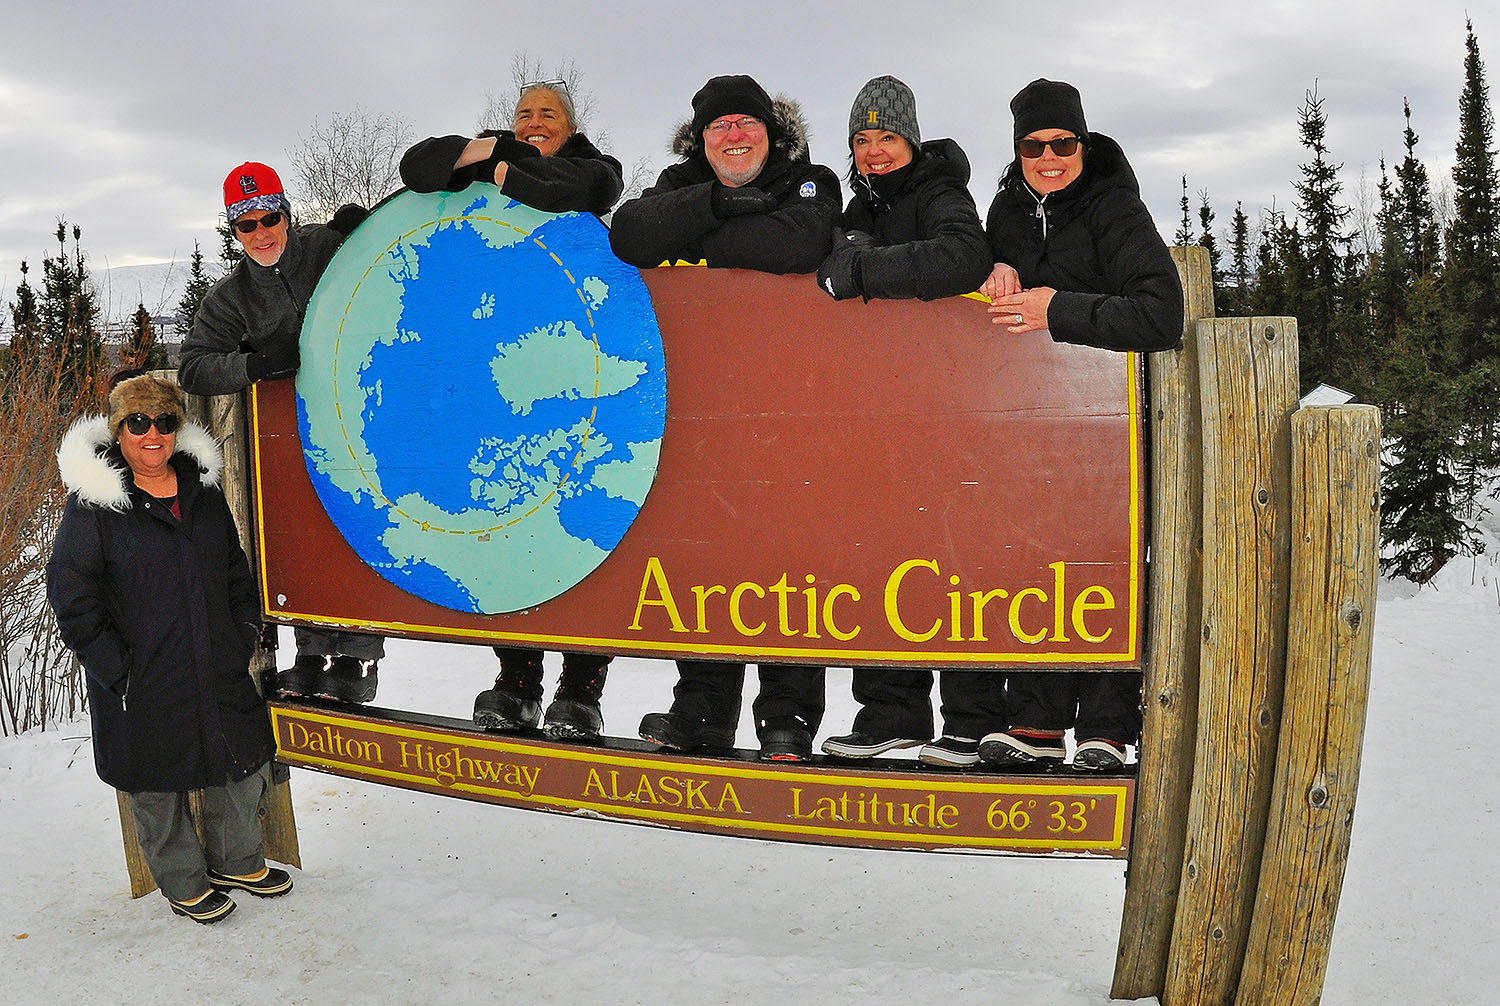 Arctic Circle - Dalton Highway